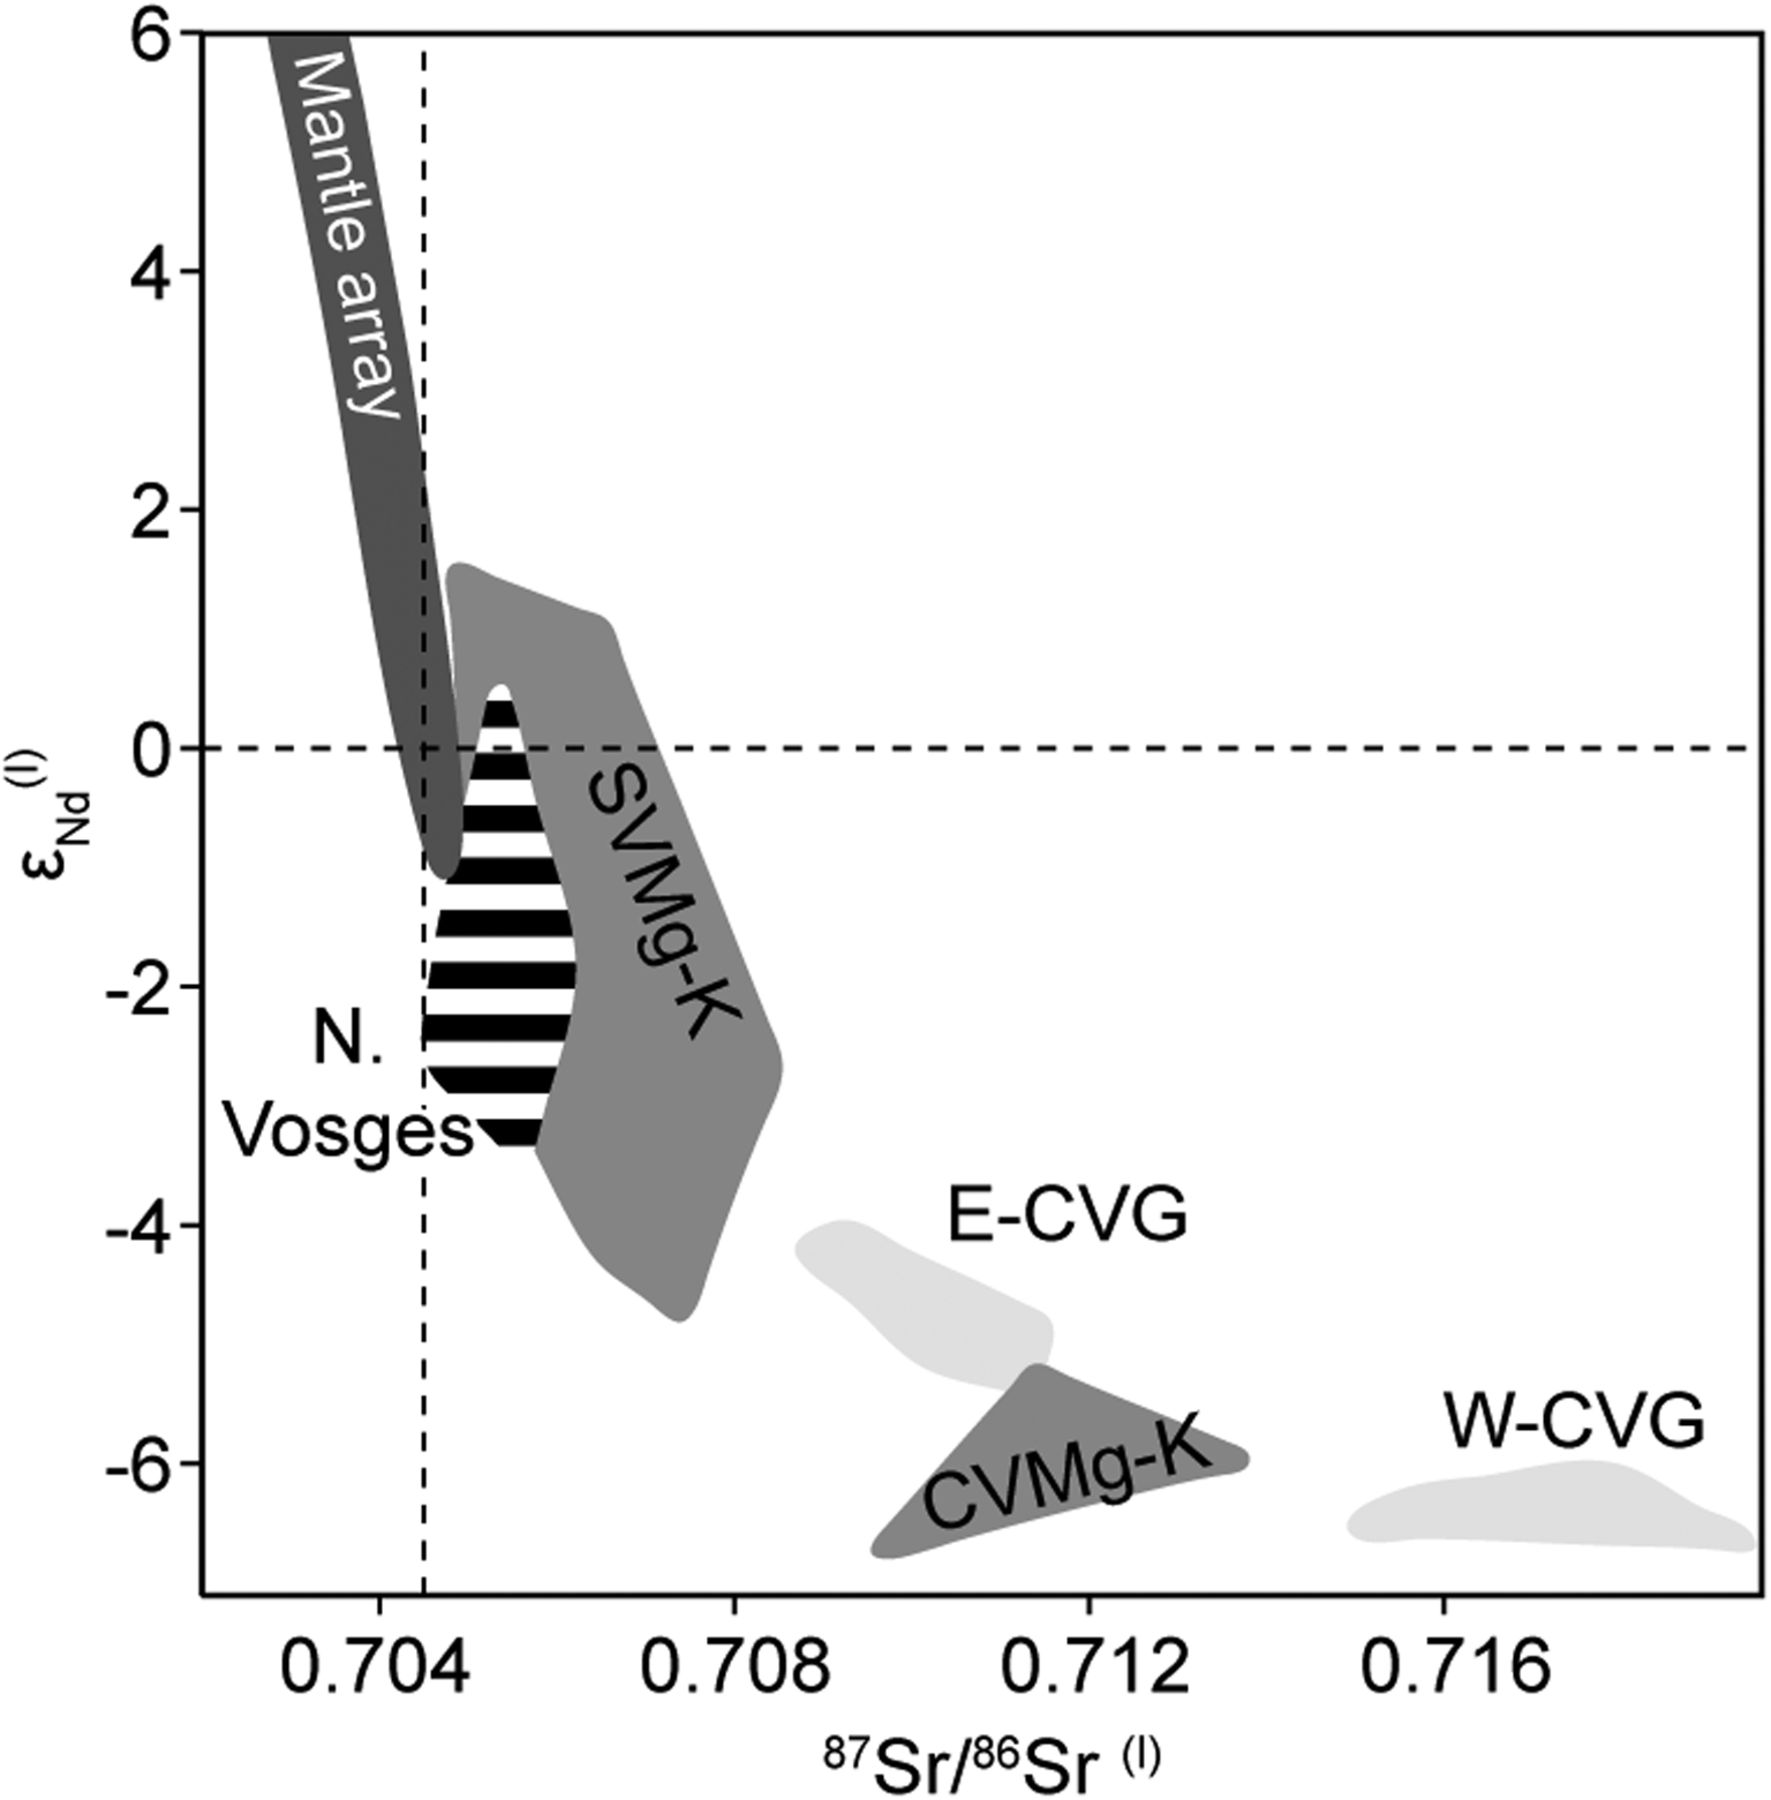 Palaeozoic evolution of the Variscan Vosges Mountains